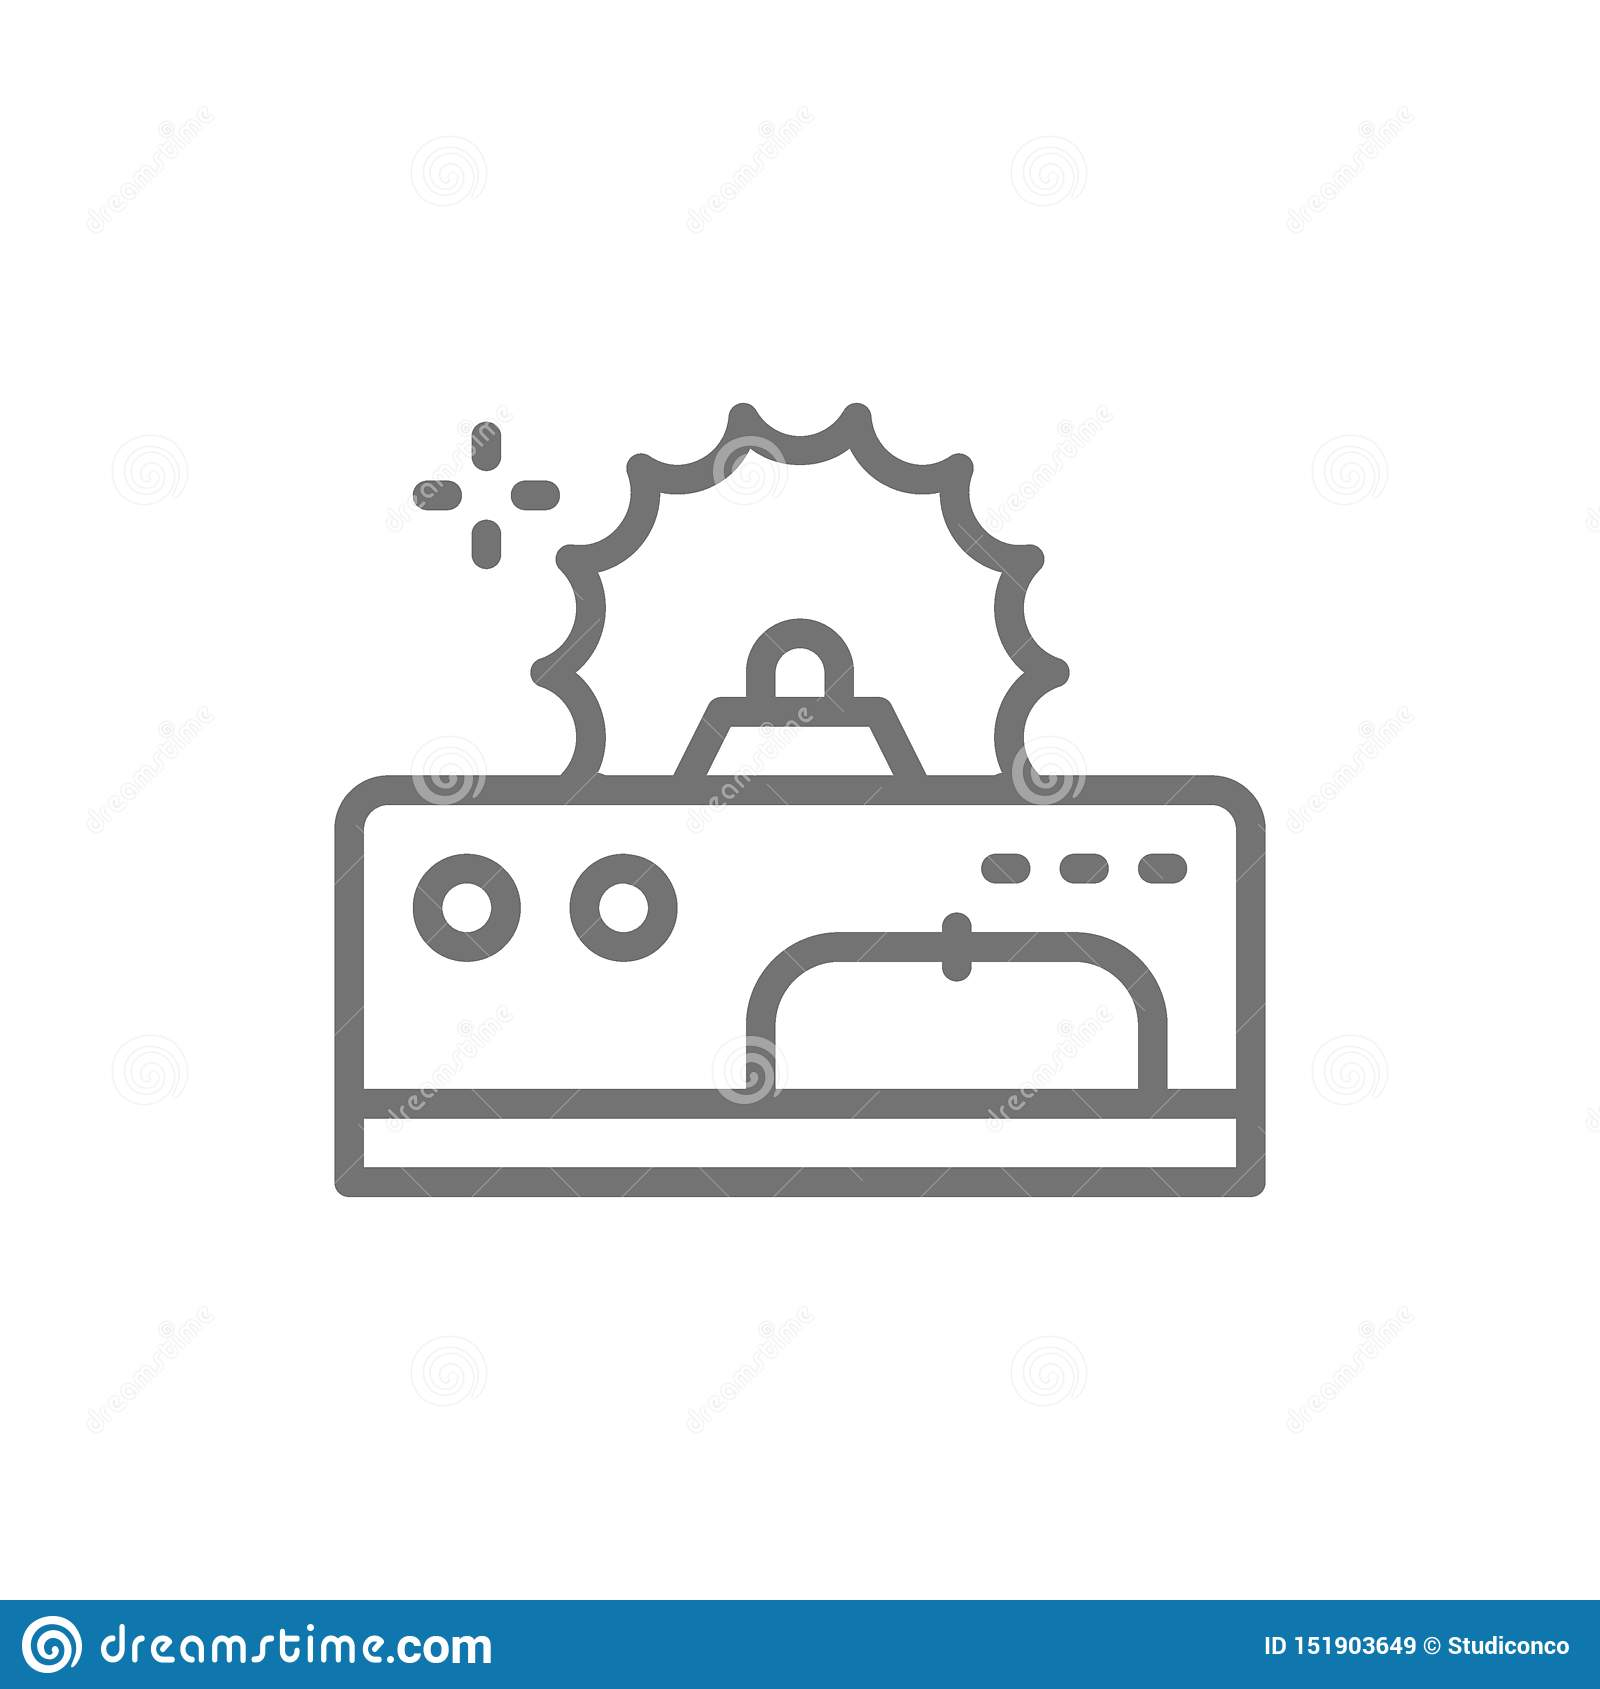 Metal Cutting Machine Electric Machine Tool For Wood Line Icon Stock Vector Illustration Of Element Electric 151903649